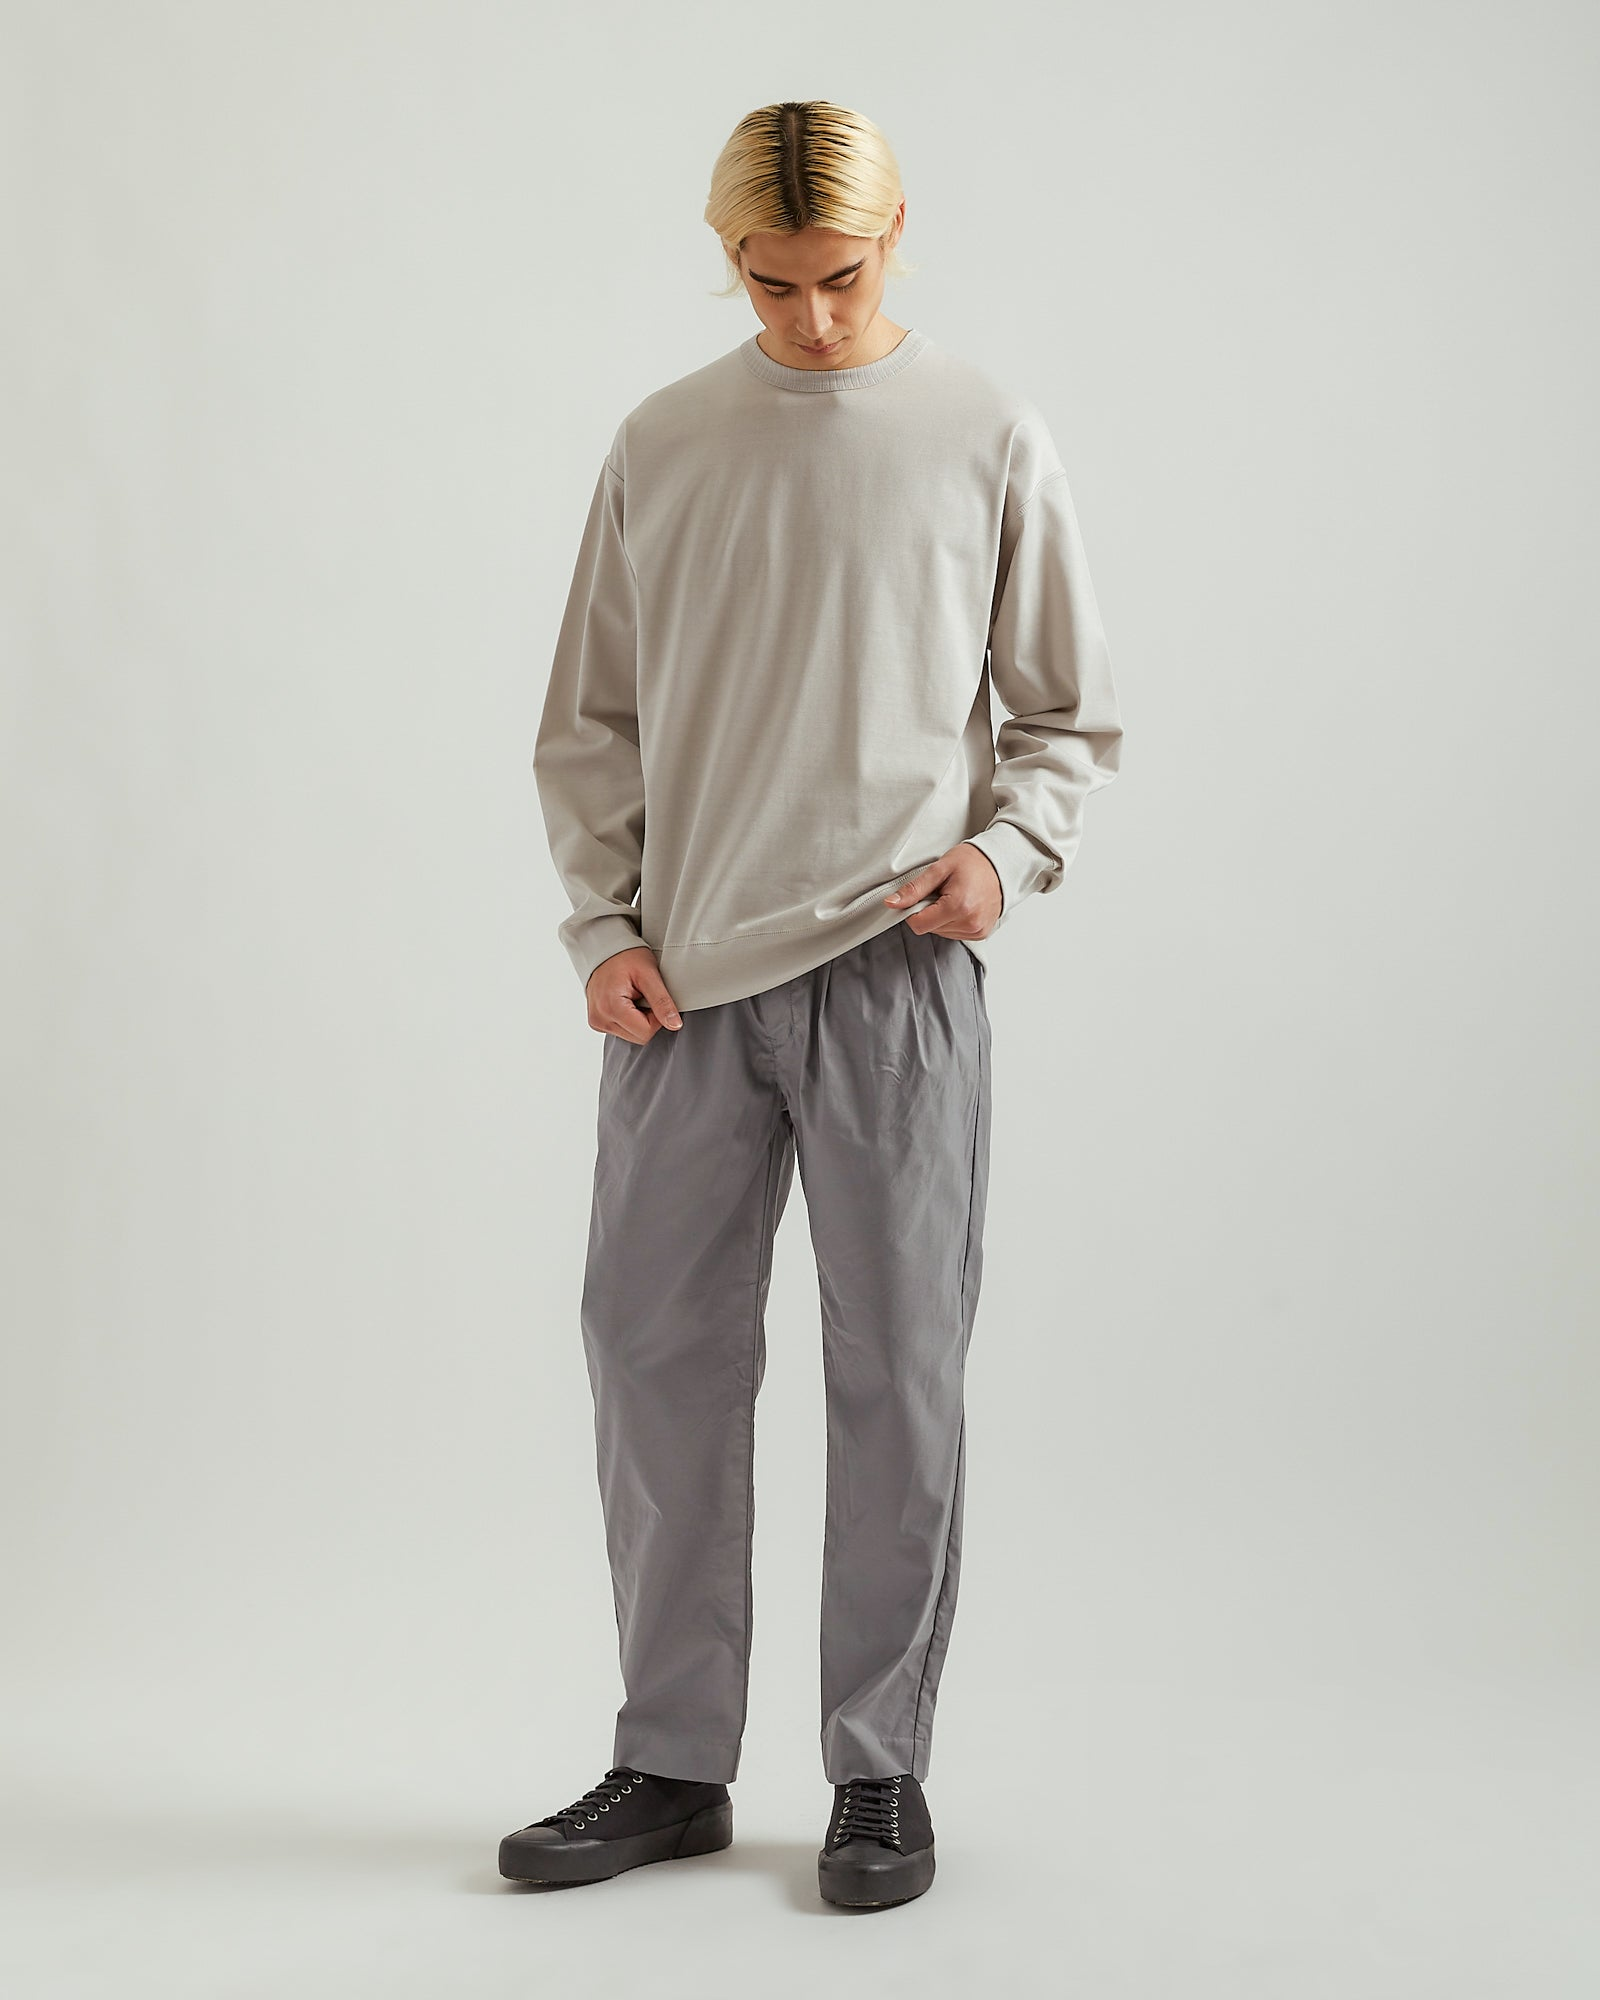 Lightweight Sweatshirt in Gray